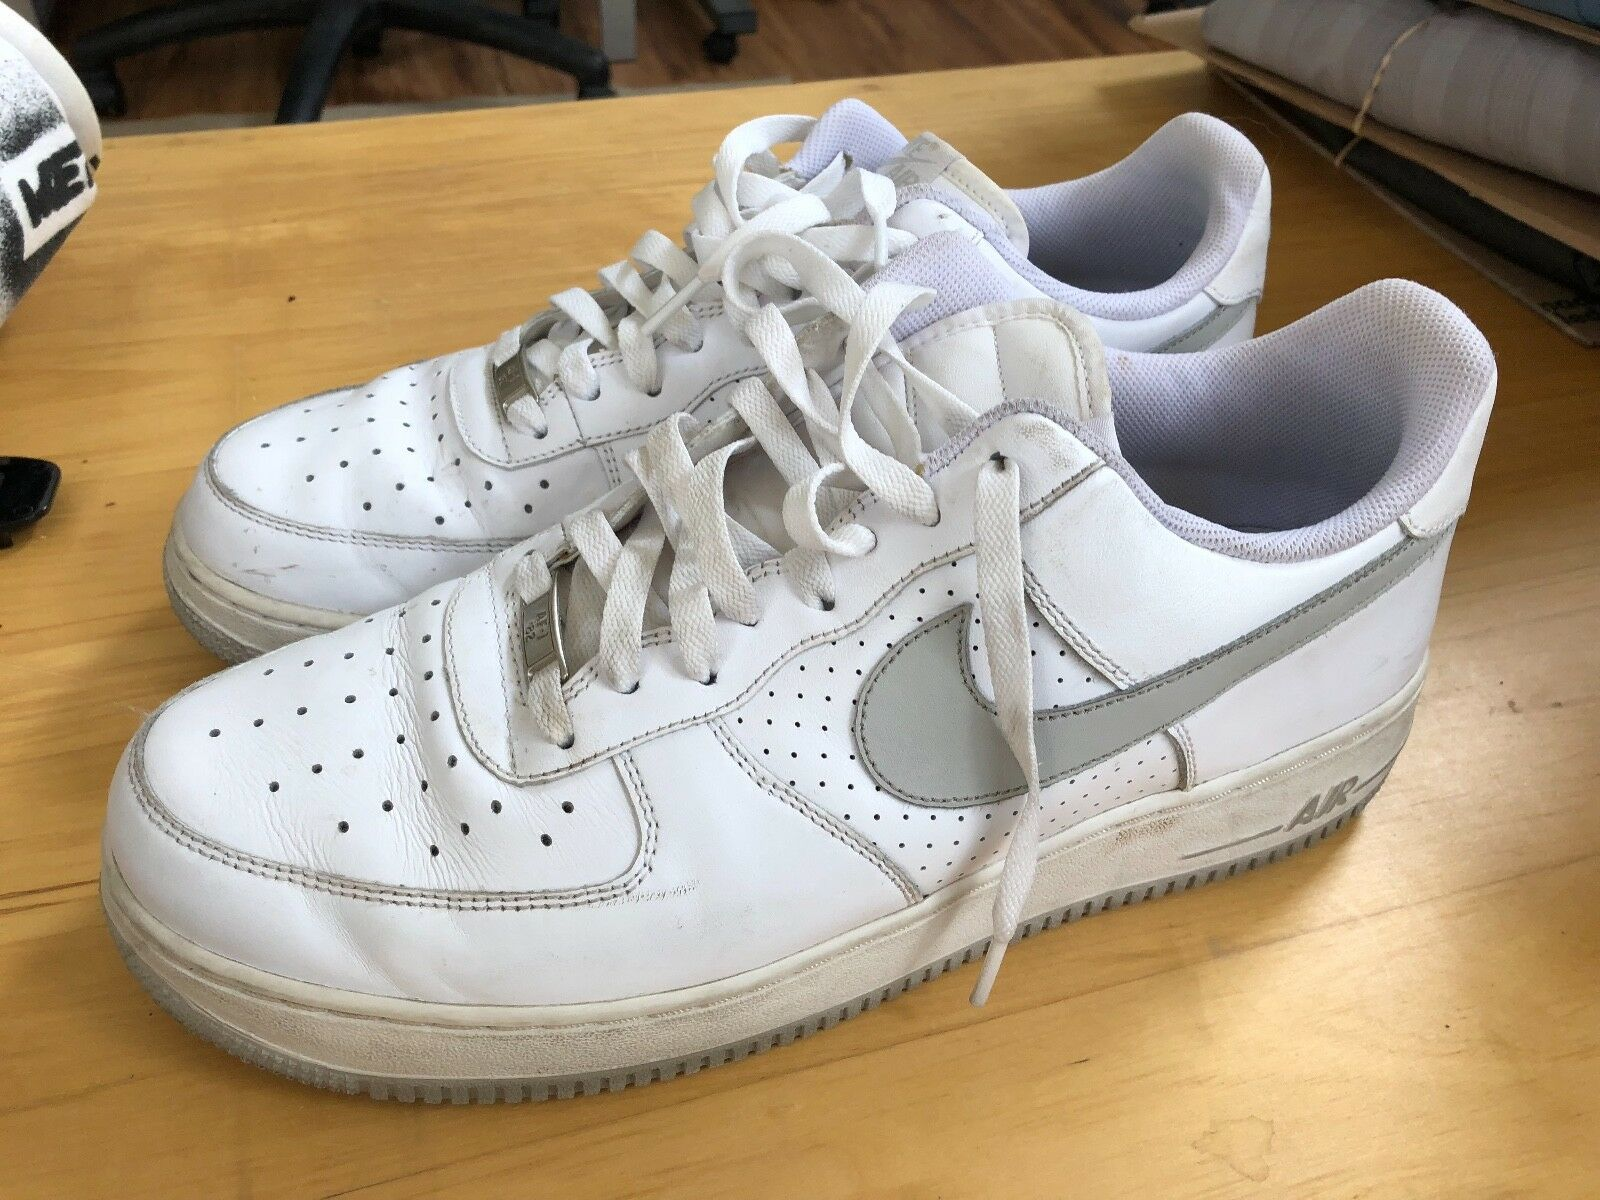 MENS PREOWNED NIKE AF1 '92 SIZE 12  KUC331